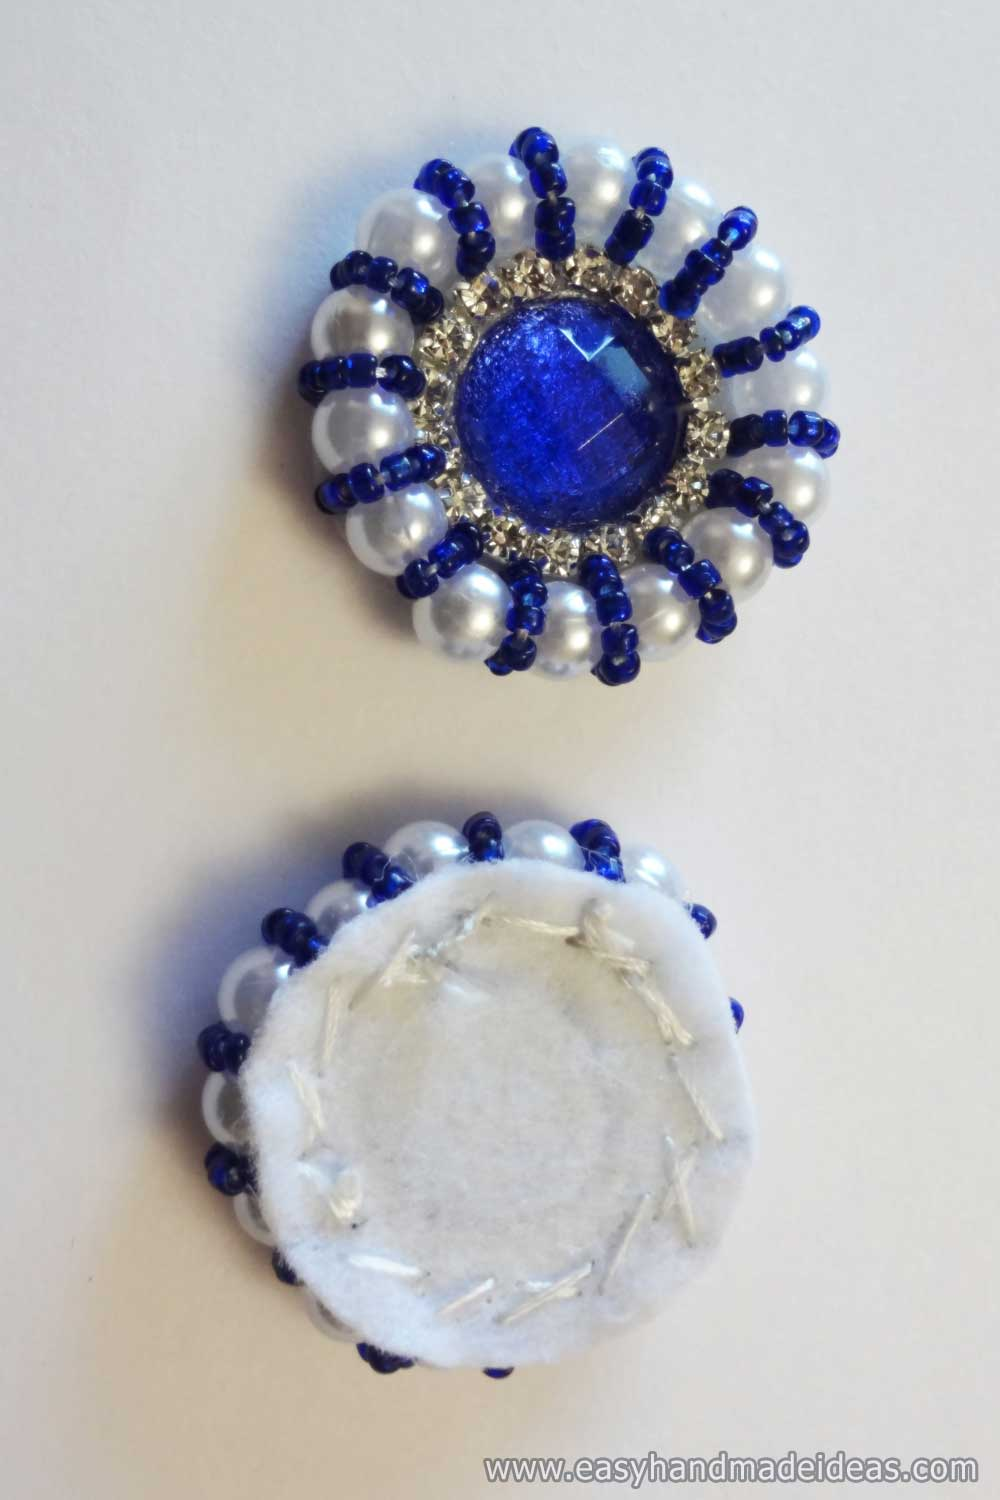 Application of all Blue Beads